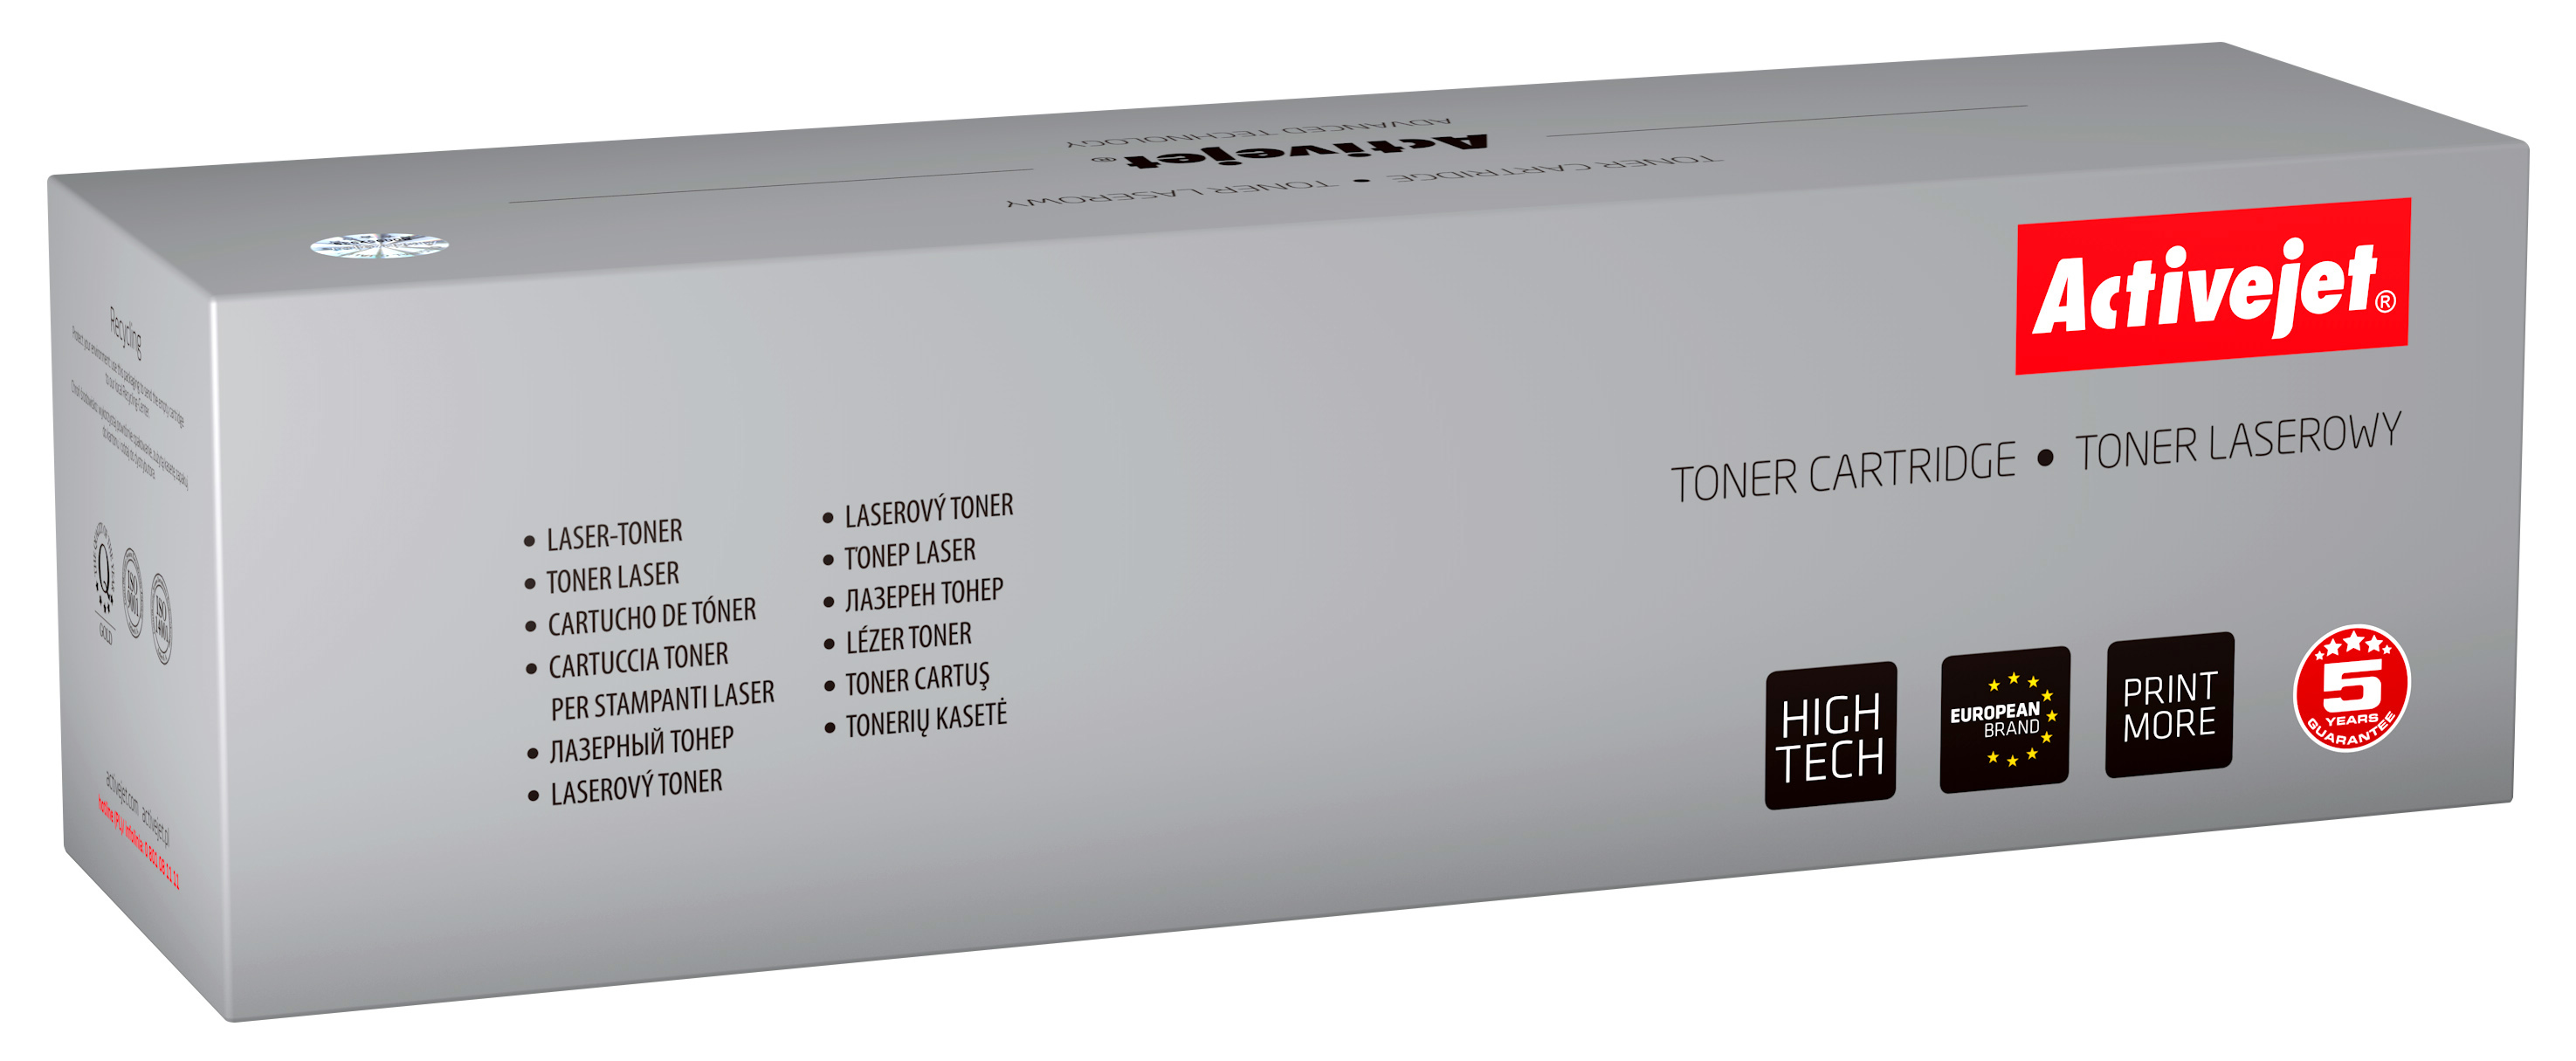 Activejet toner do Minolta TN211 new ATM-211N